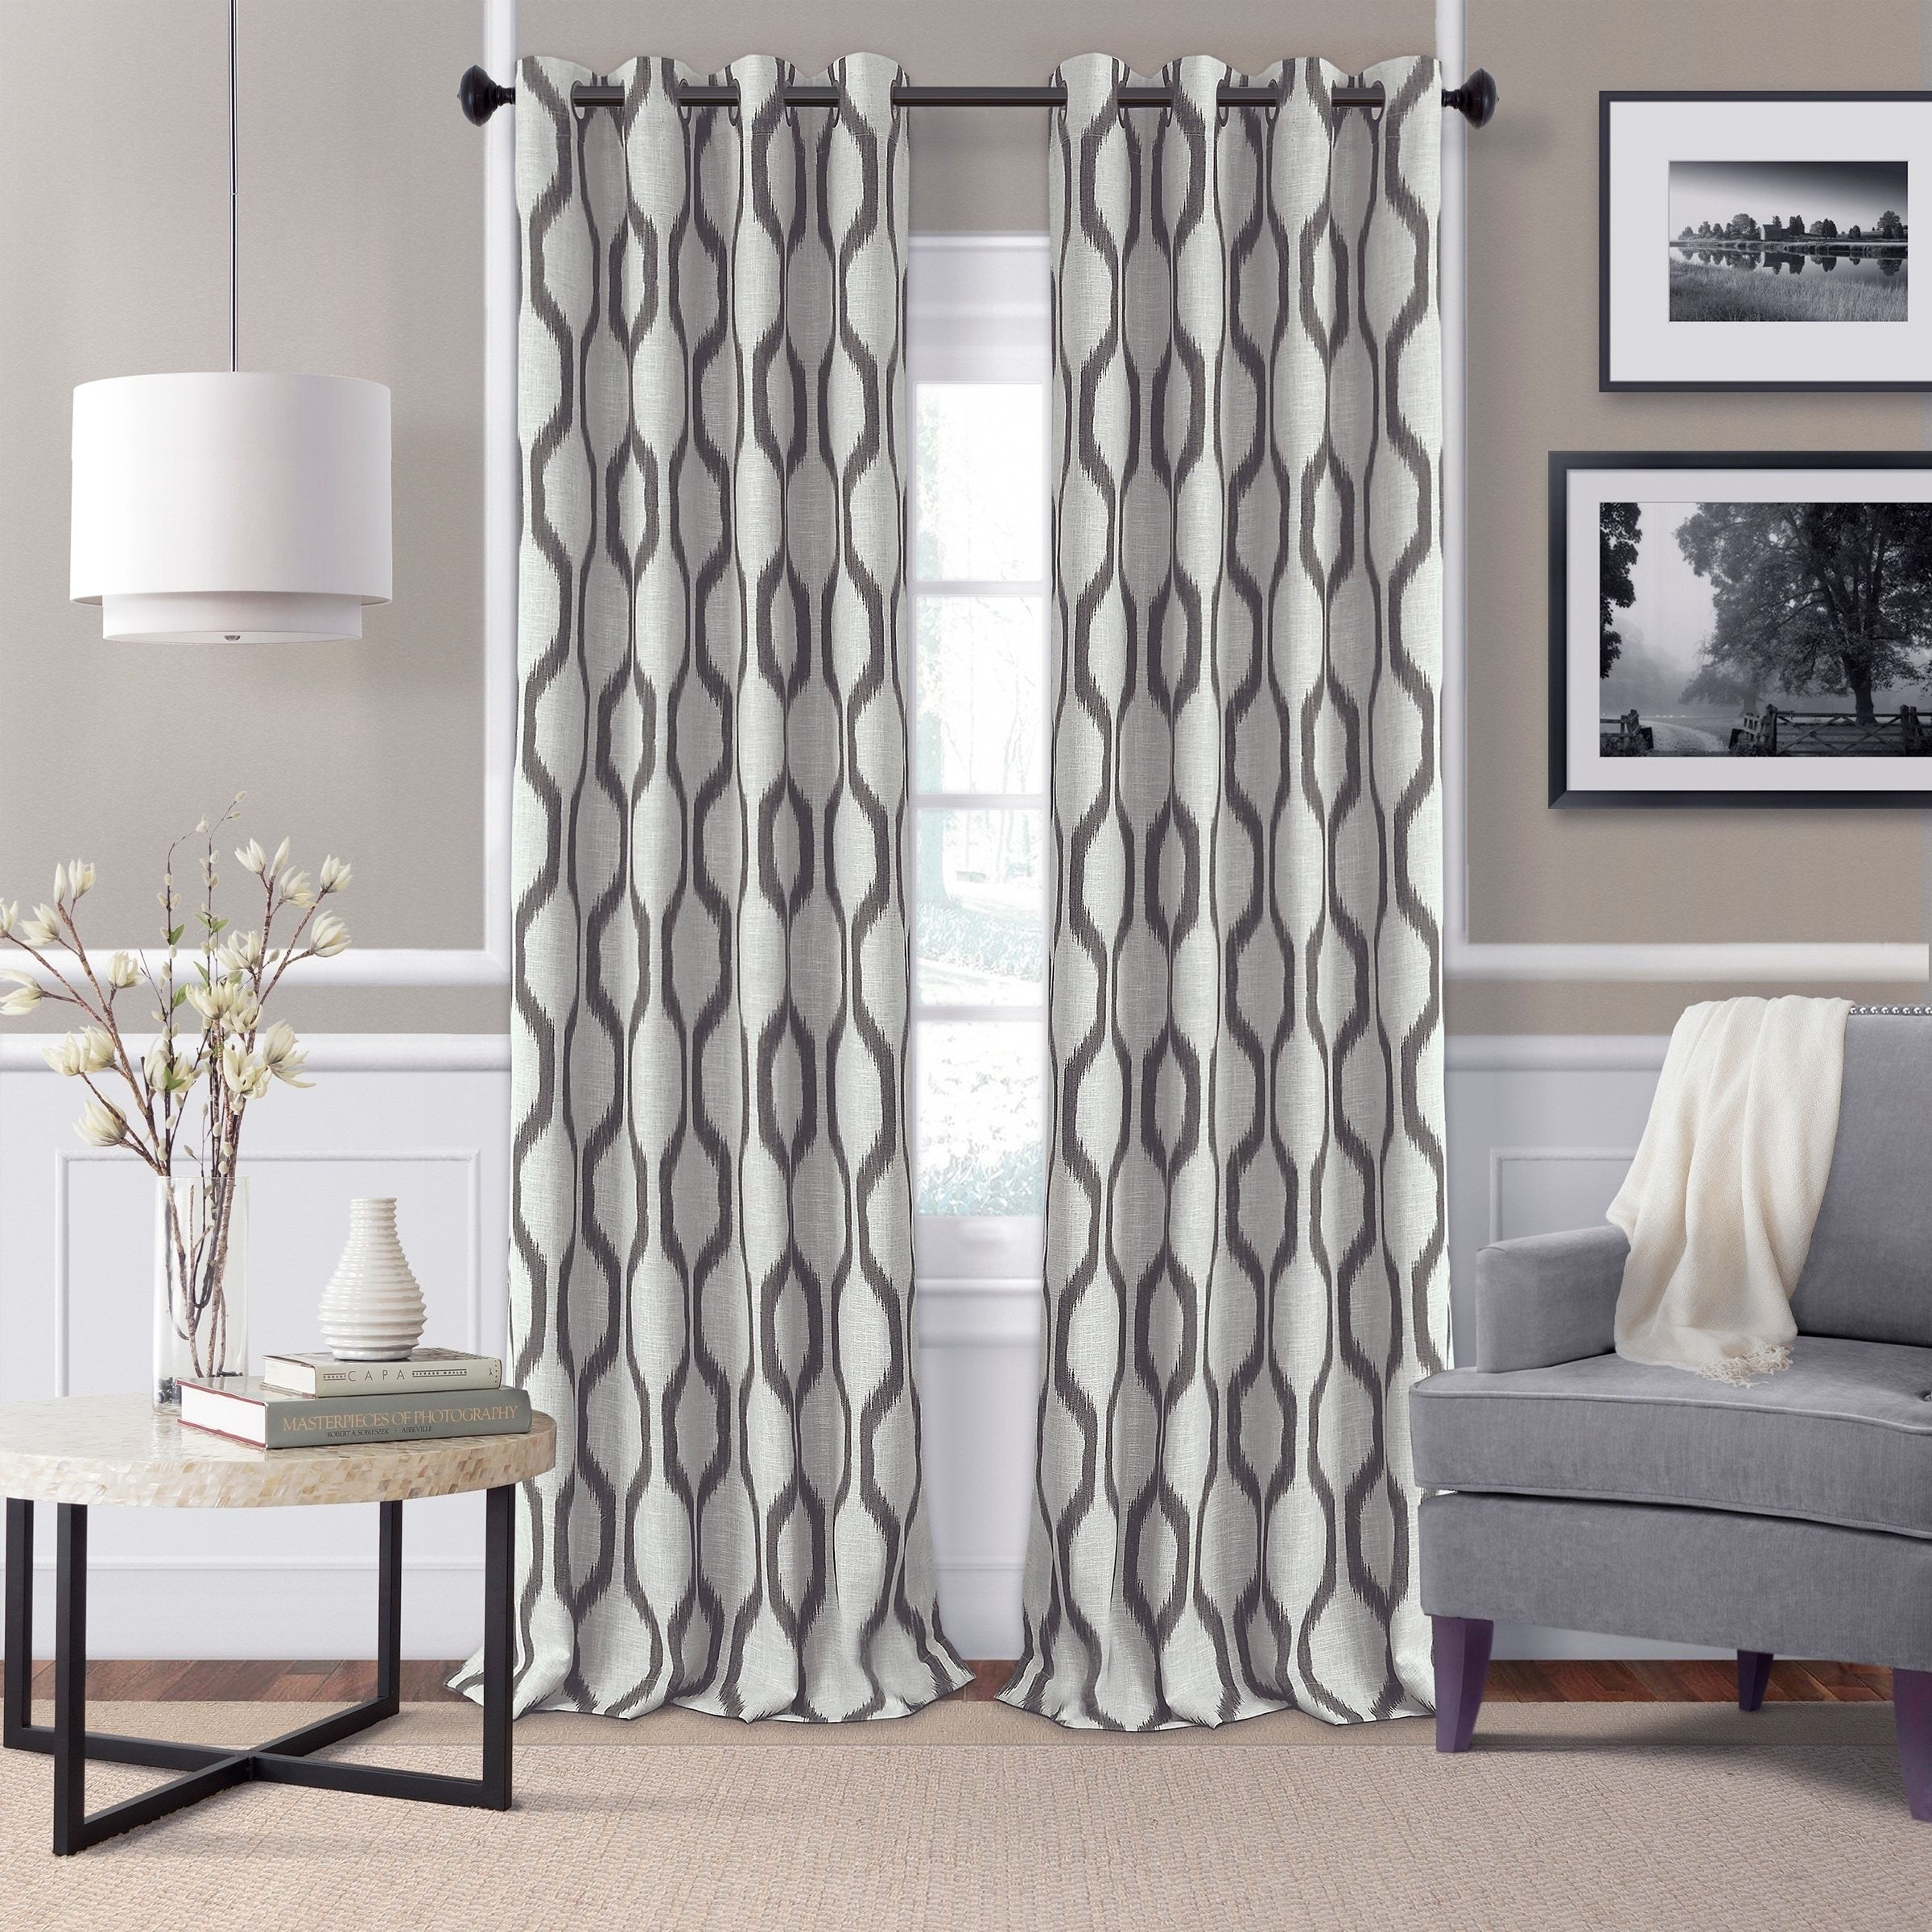 Overstock Com Online Shopping Bedding Furniture Electronics Jewelry Clothing More Panel Curtains Elrene Home Fashions Curtains